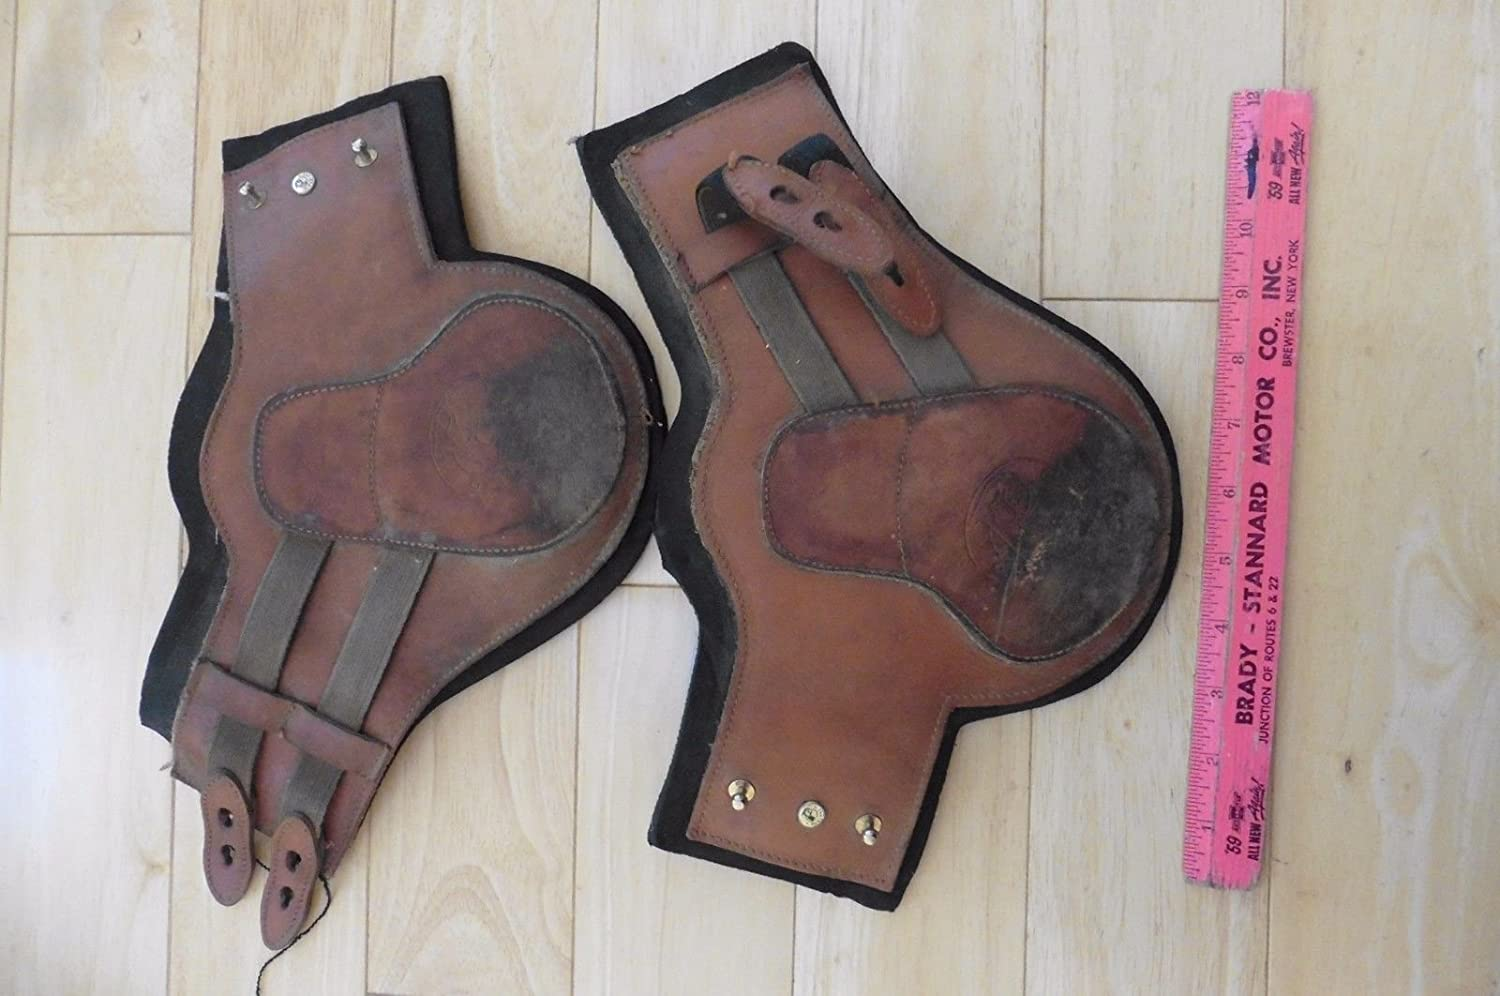 2 PARIANI Removable NEOPRENE LINED Leather FETLOCK JUMPING BOOTS:  Amazon.ca: Sports & Outdoors